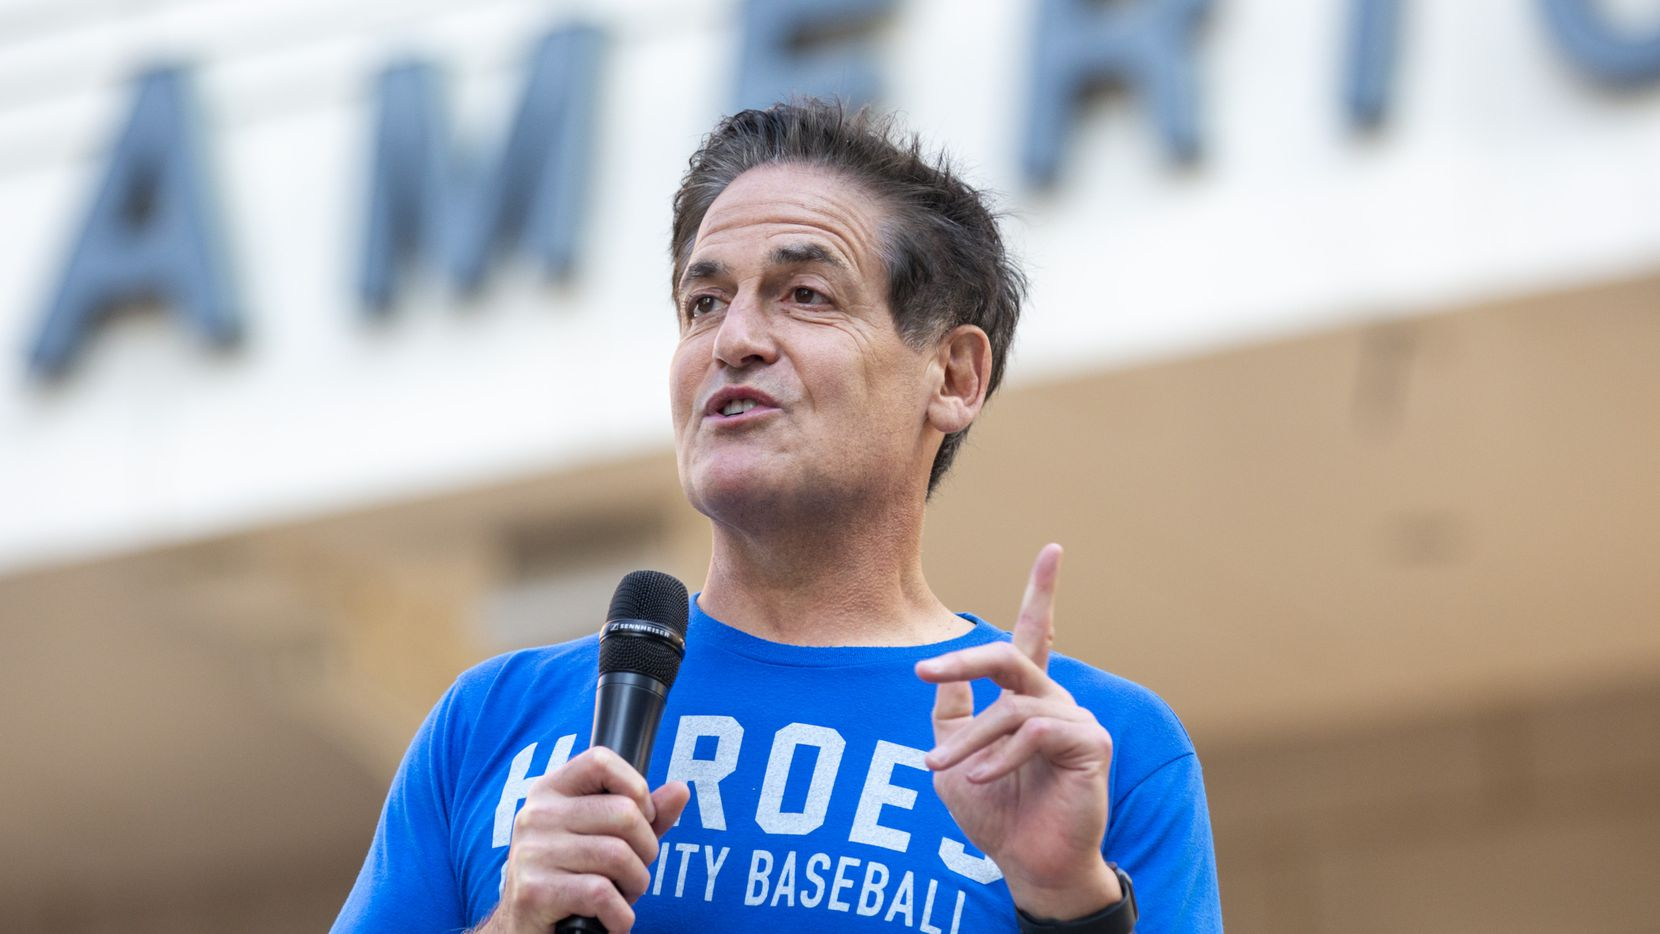 Dallas Mavericks Owner Mark Cuban welcomes attendees during a Courageous Conversations meet-up to discuss systemic racism at Victory Plaza outside the American Airlines Center in Dallas on Tuesday, June 9, 2020. Dallas Mavericks CEO Cynt Marshall hosted the event with all team employees, including players and coaches, to discuss systemic racism and disparities facing the African-American community.